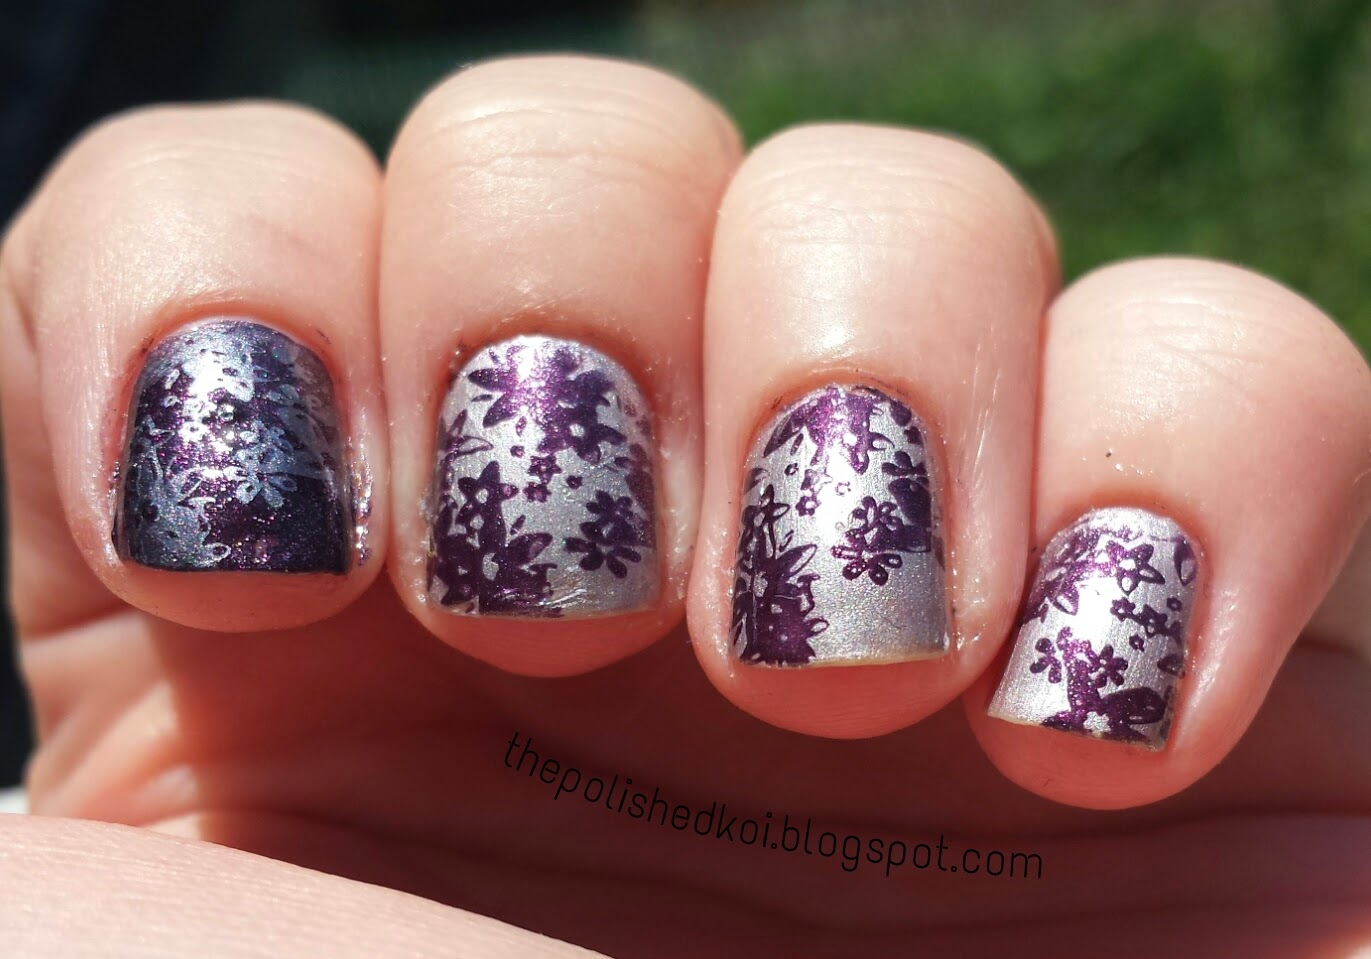 Sally Hansen Pedal to the Metal MoYou London stamping